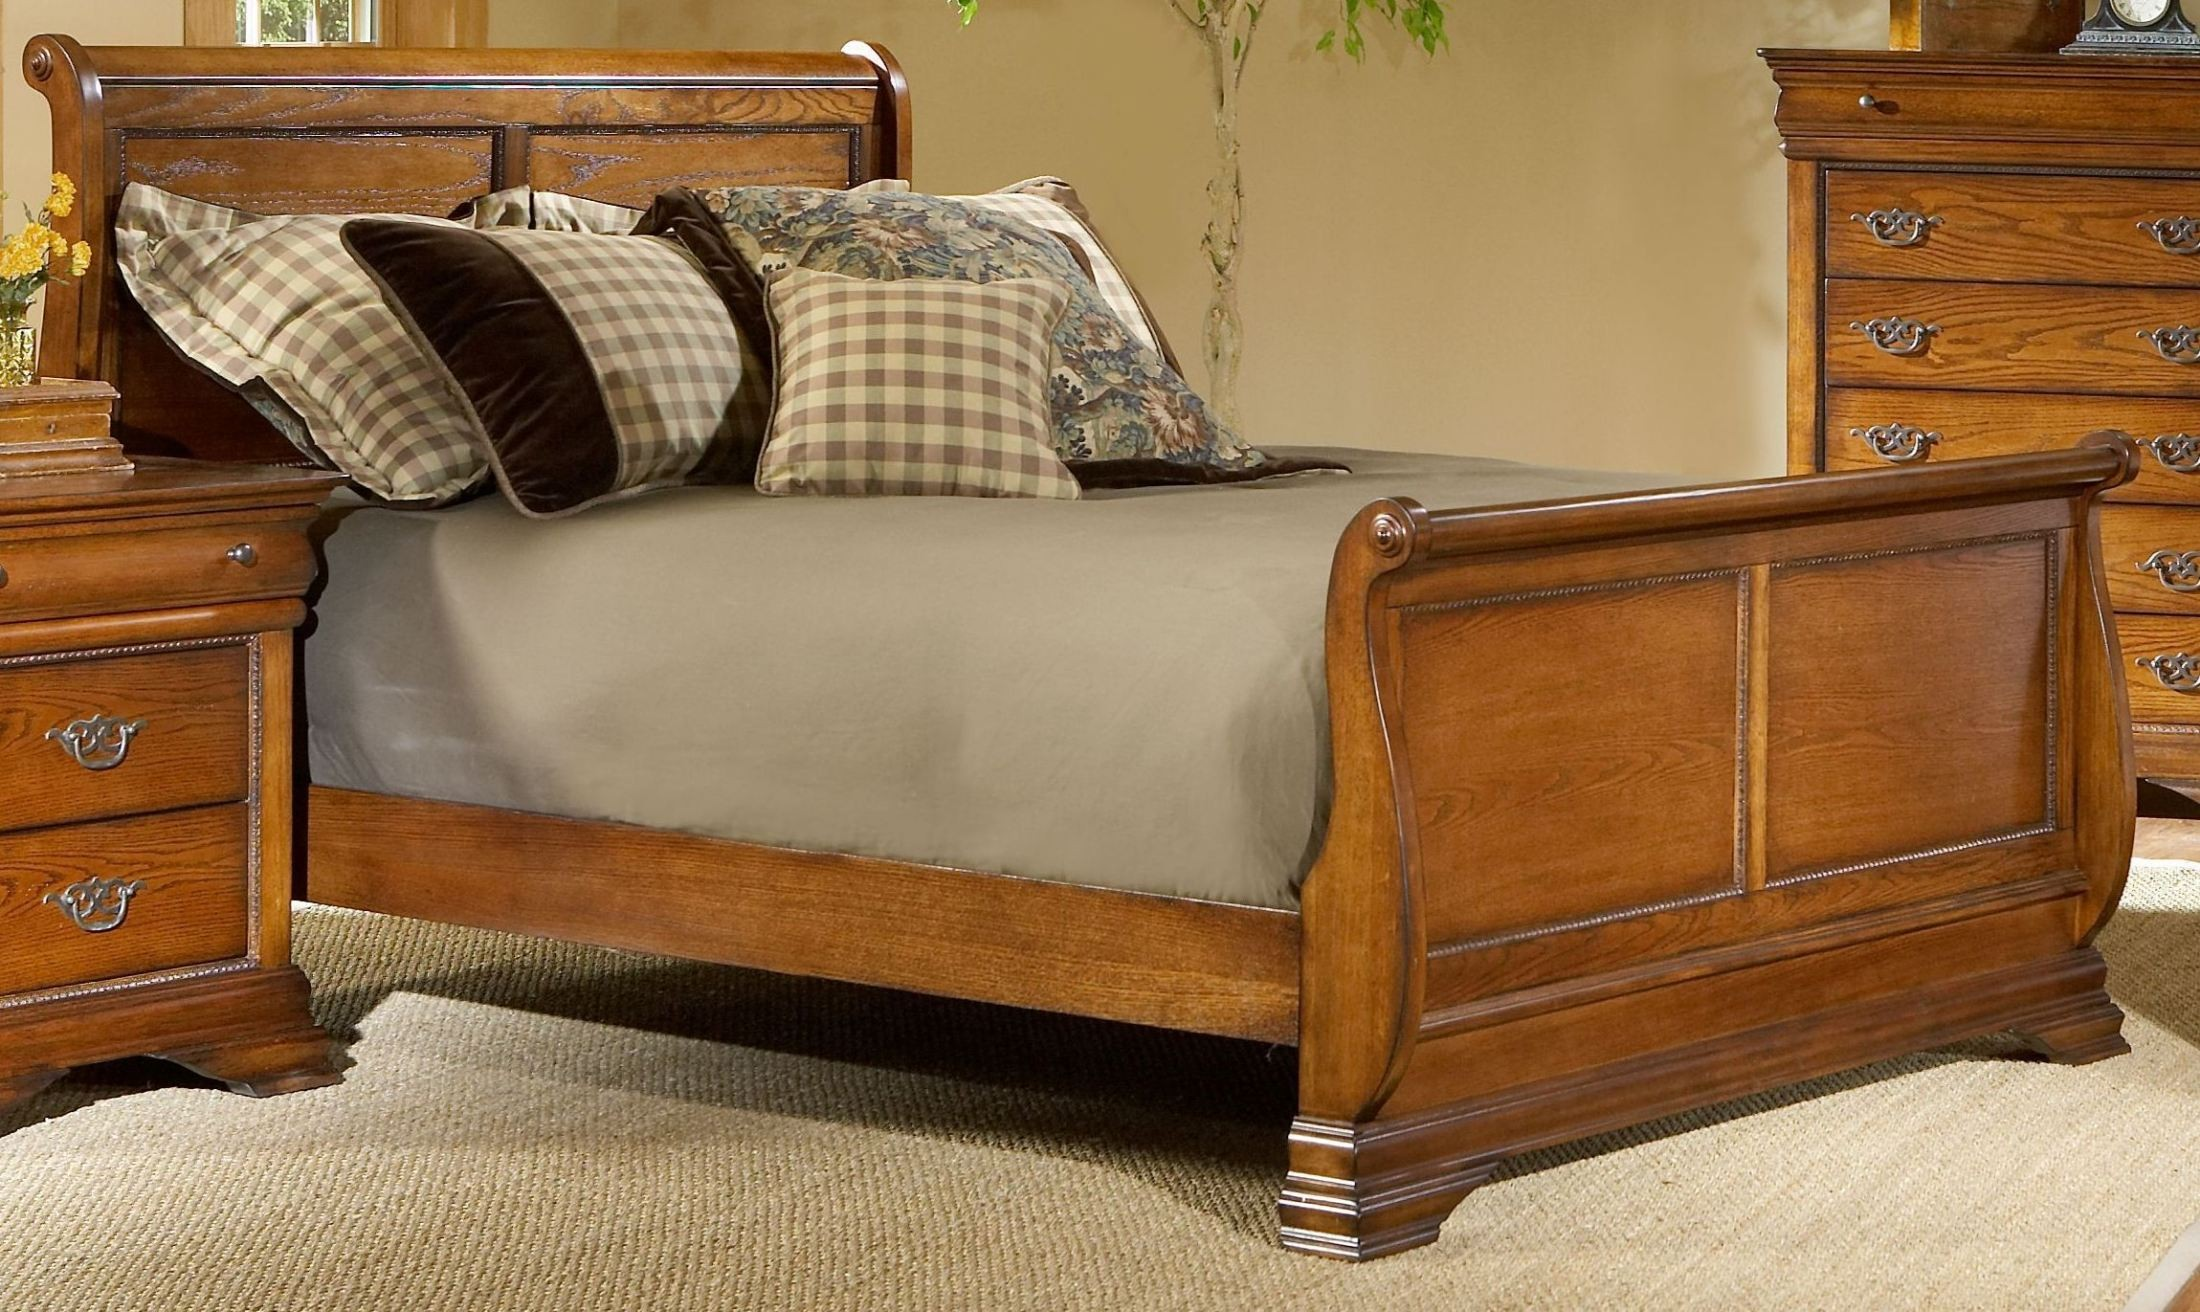 Shenandoah american oak king sleigh bed b4850 61h 61f 61r - King size sleigh bed bedroom set ...